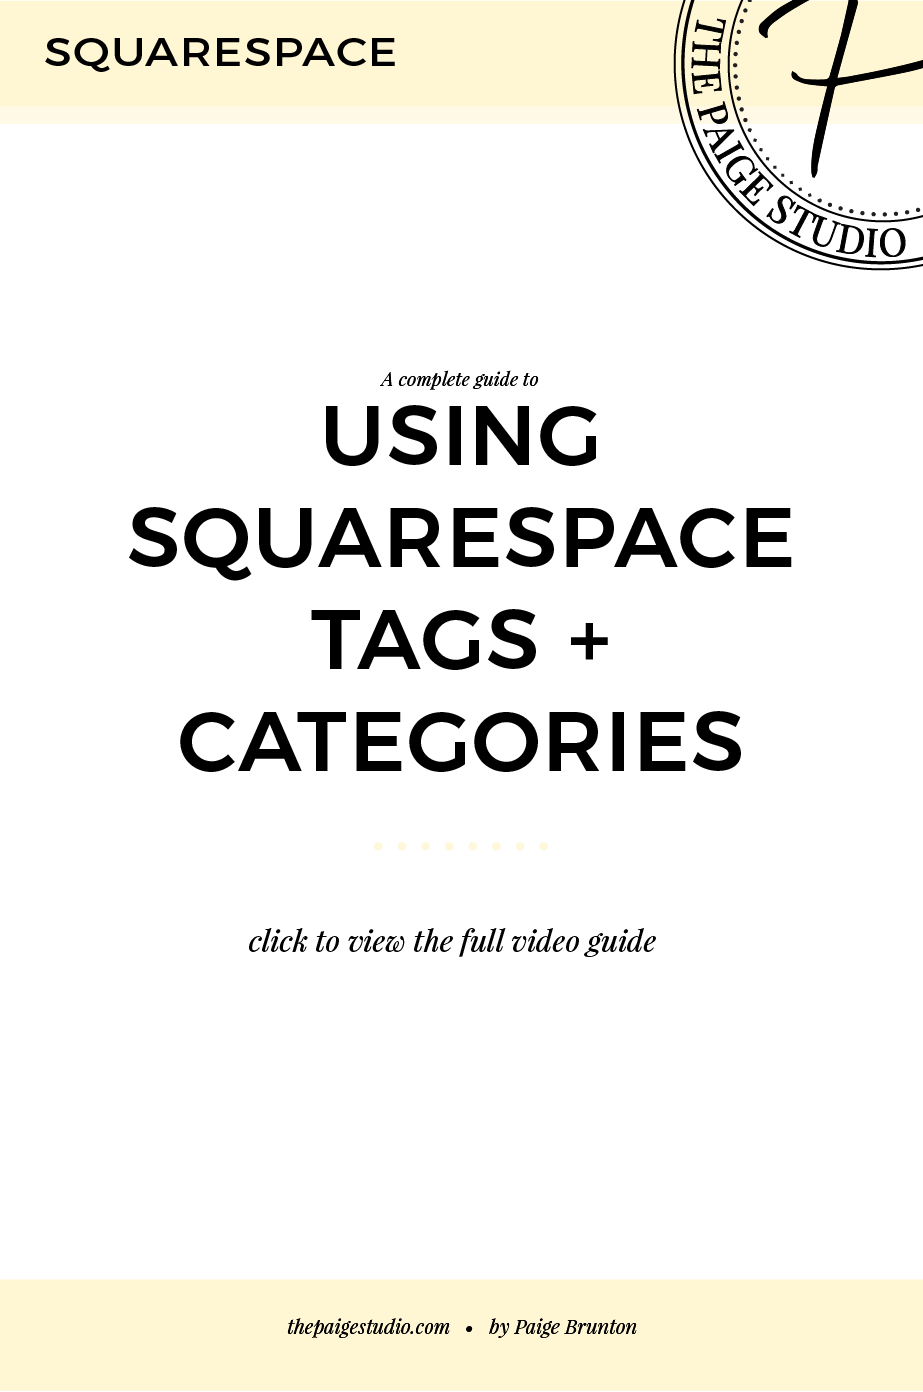 What tags are Variety of tags 8